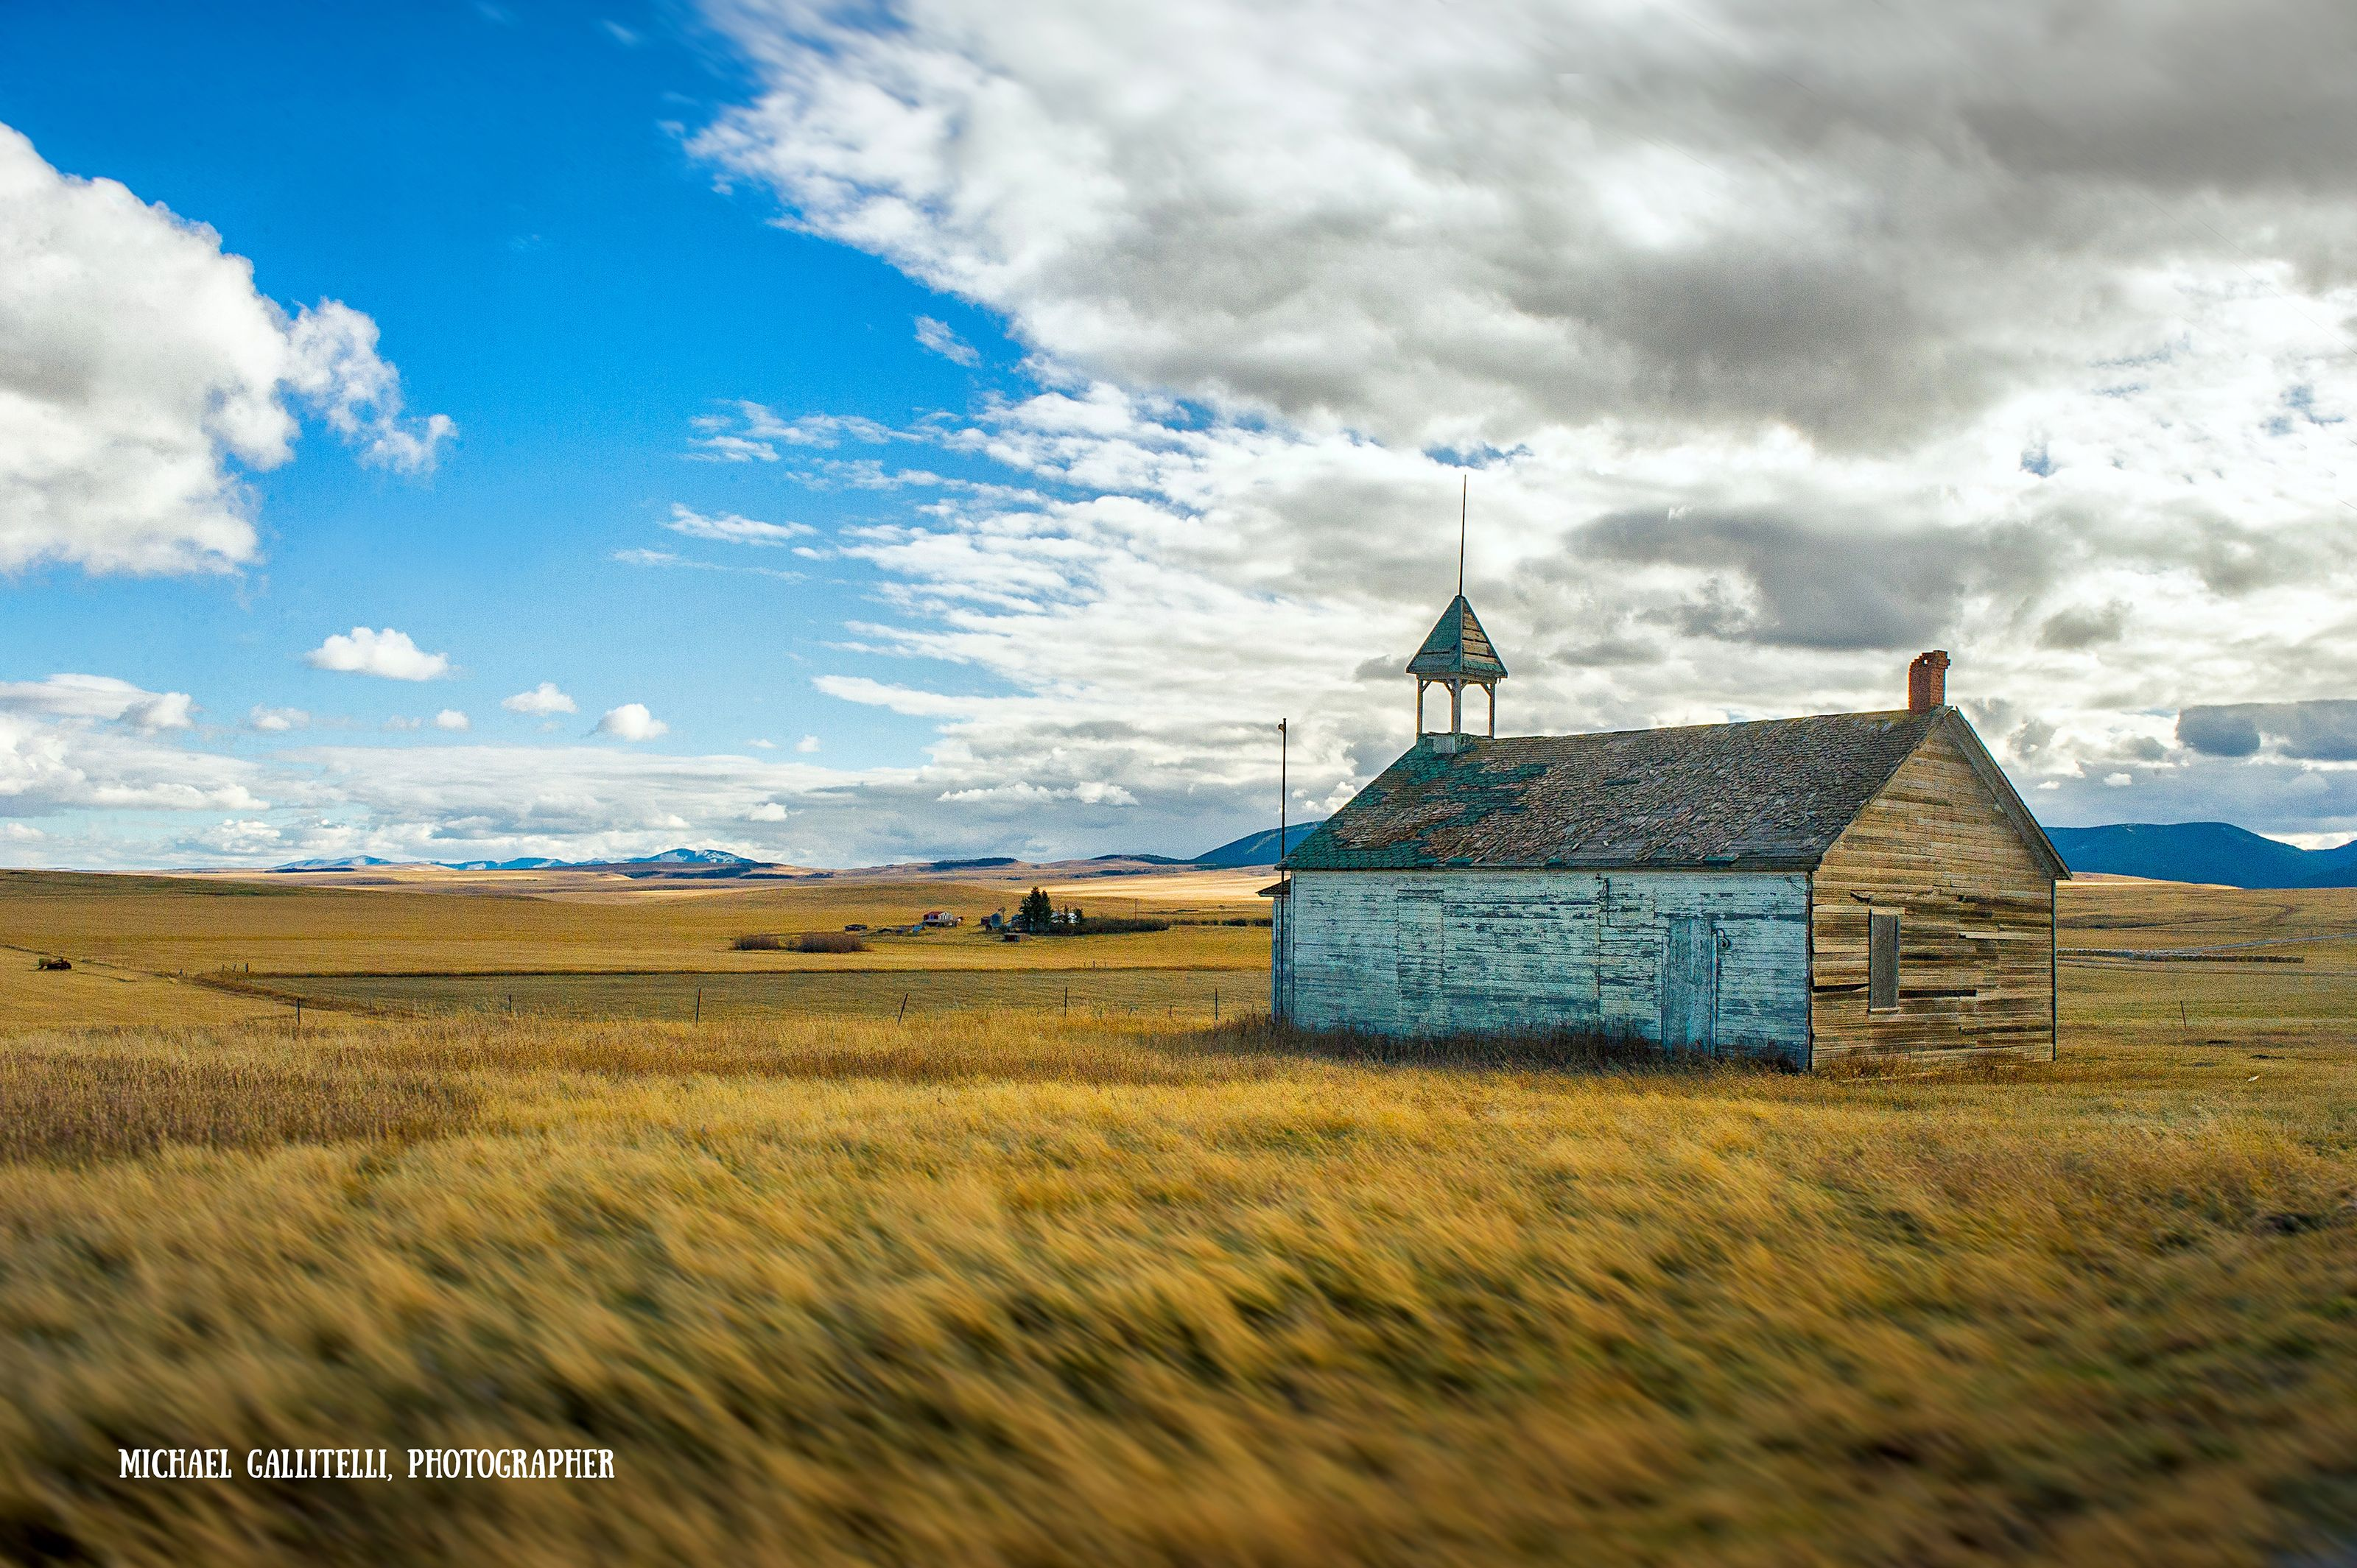 Montana rosebud county angela - Find This Pin And More On Montana